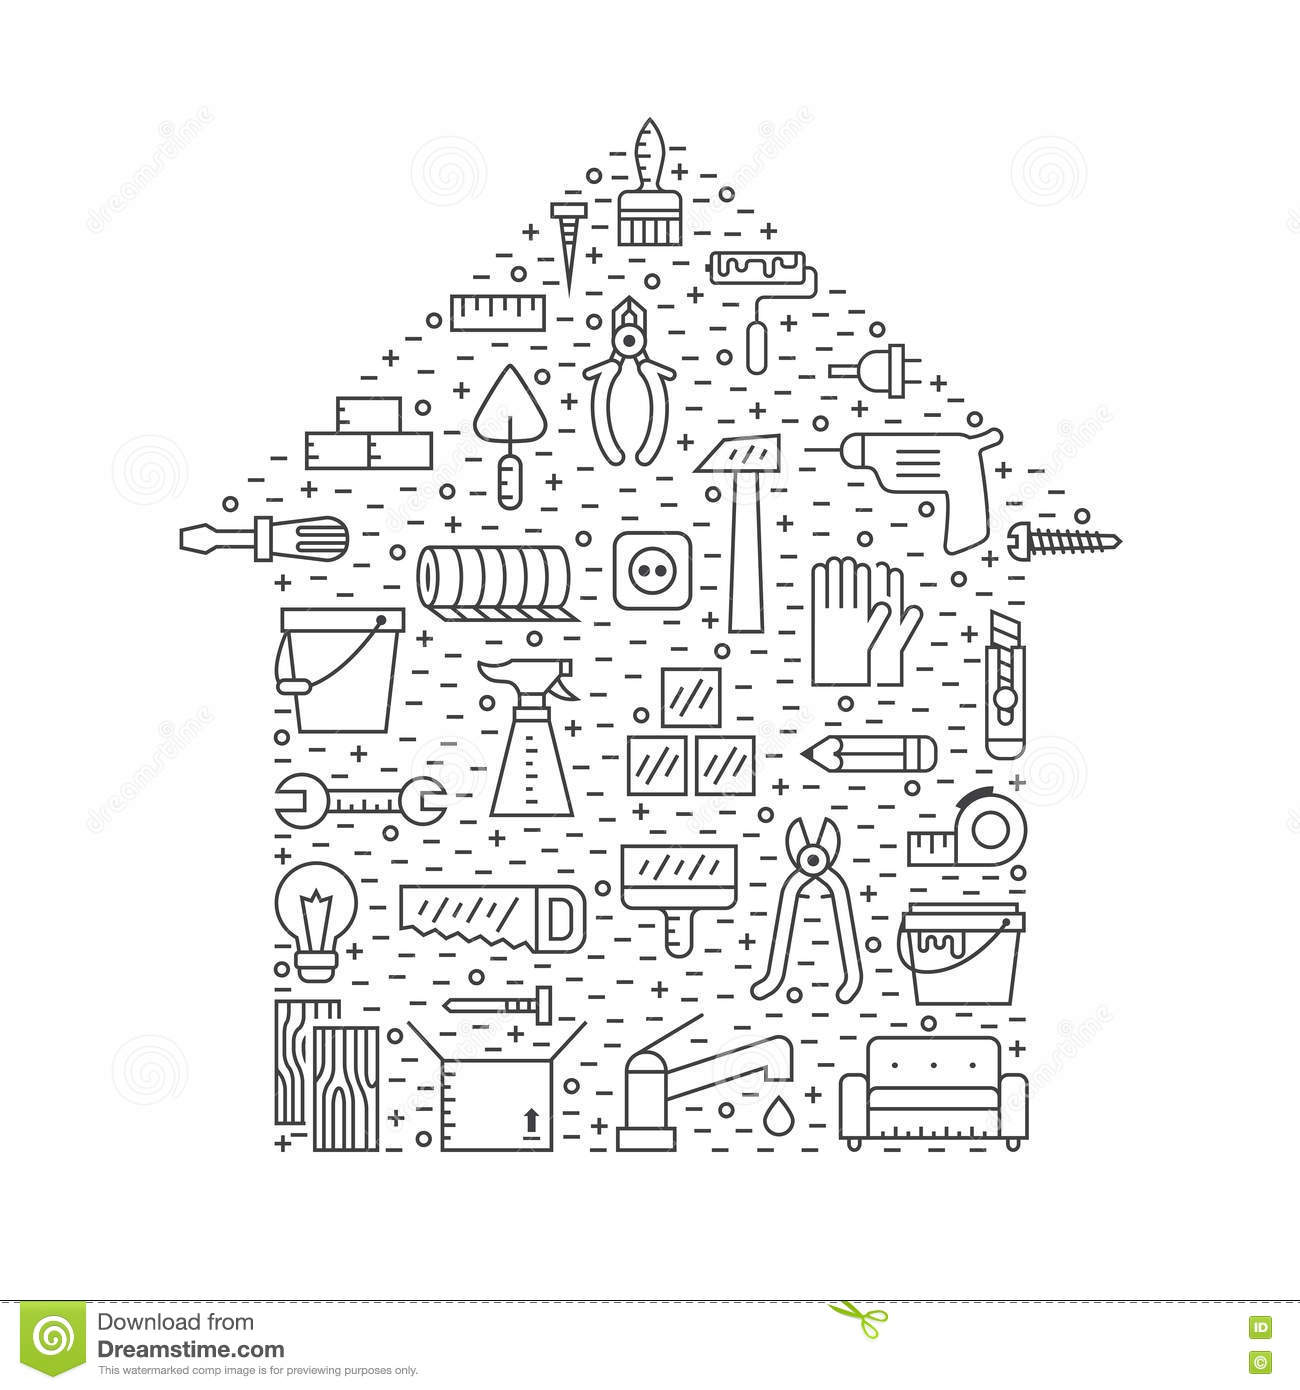 House outline picture - Home Repair And Construction Outline Gray Vector Background Simple Design House Shape Poster